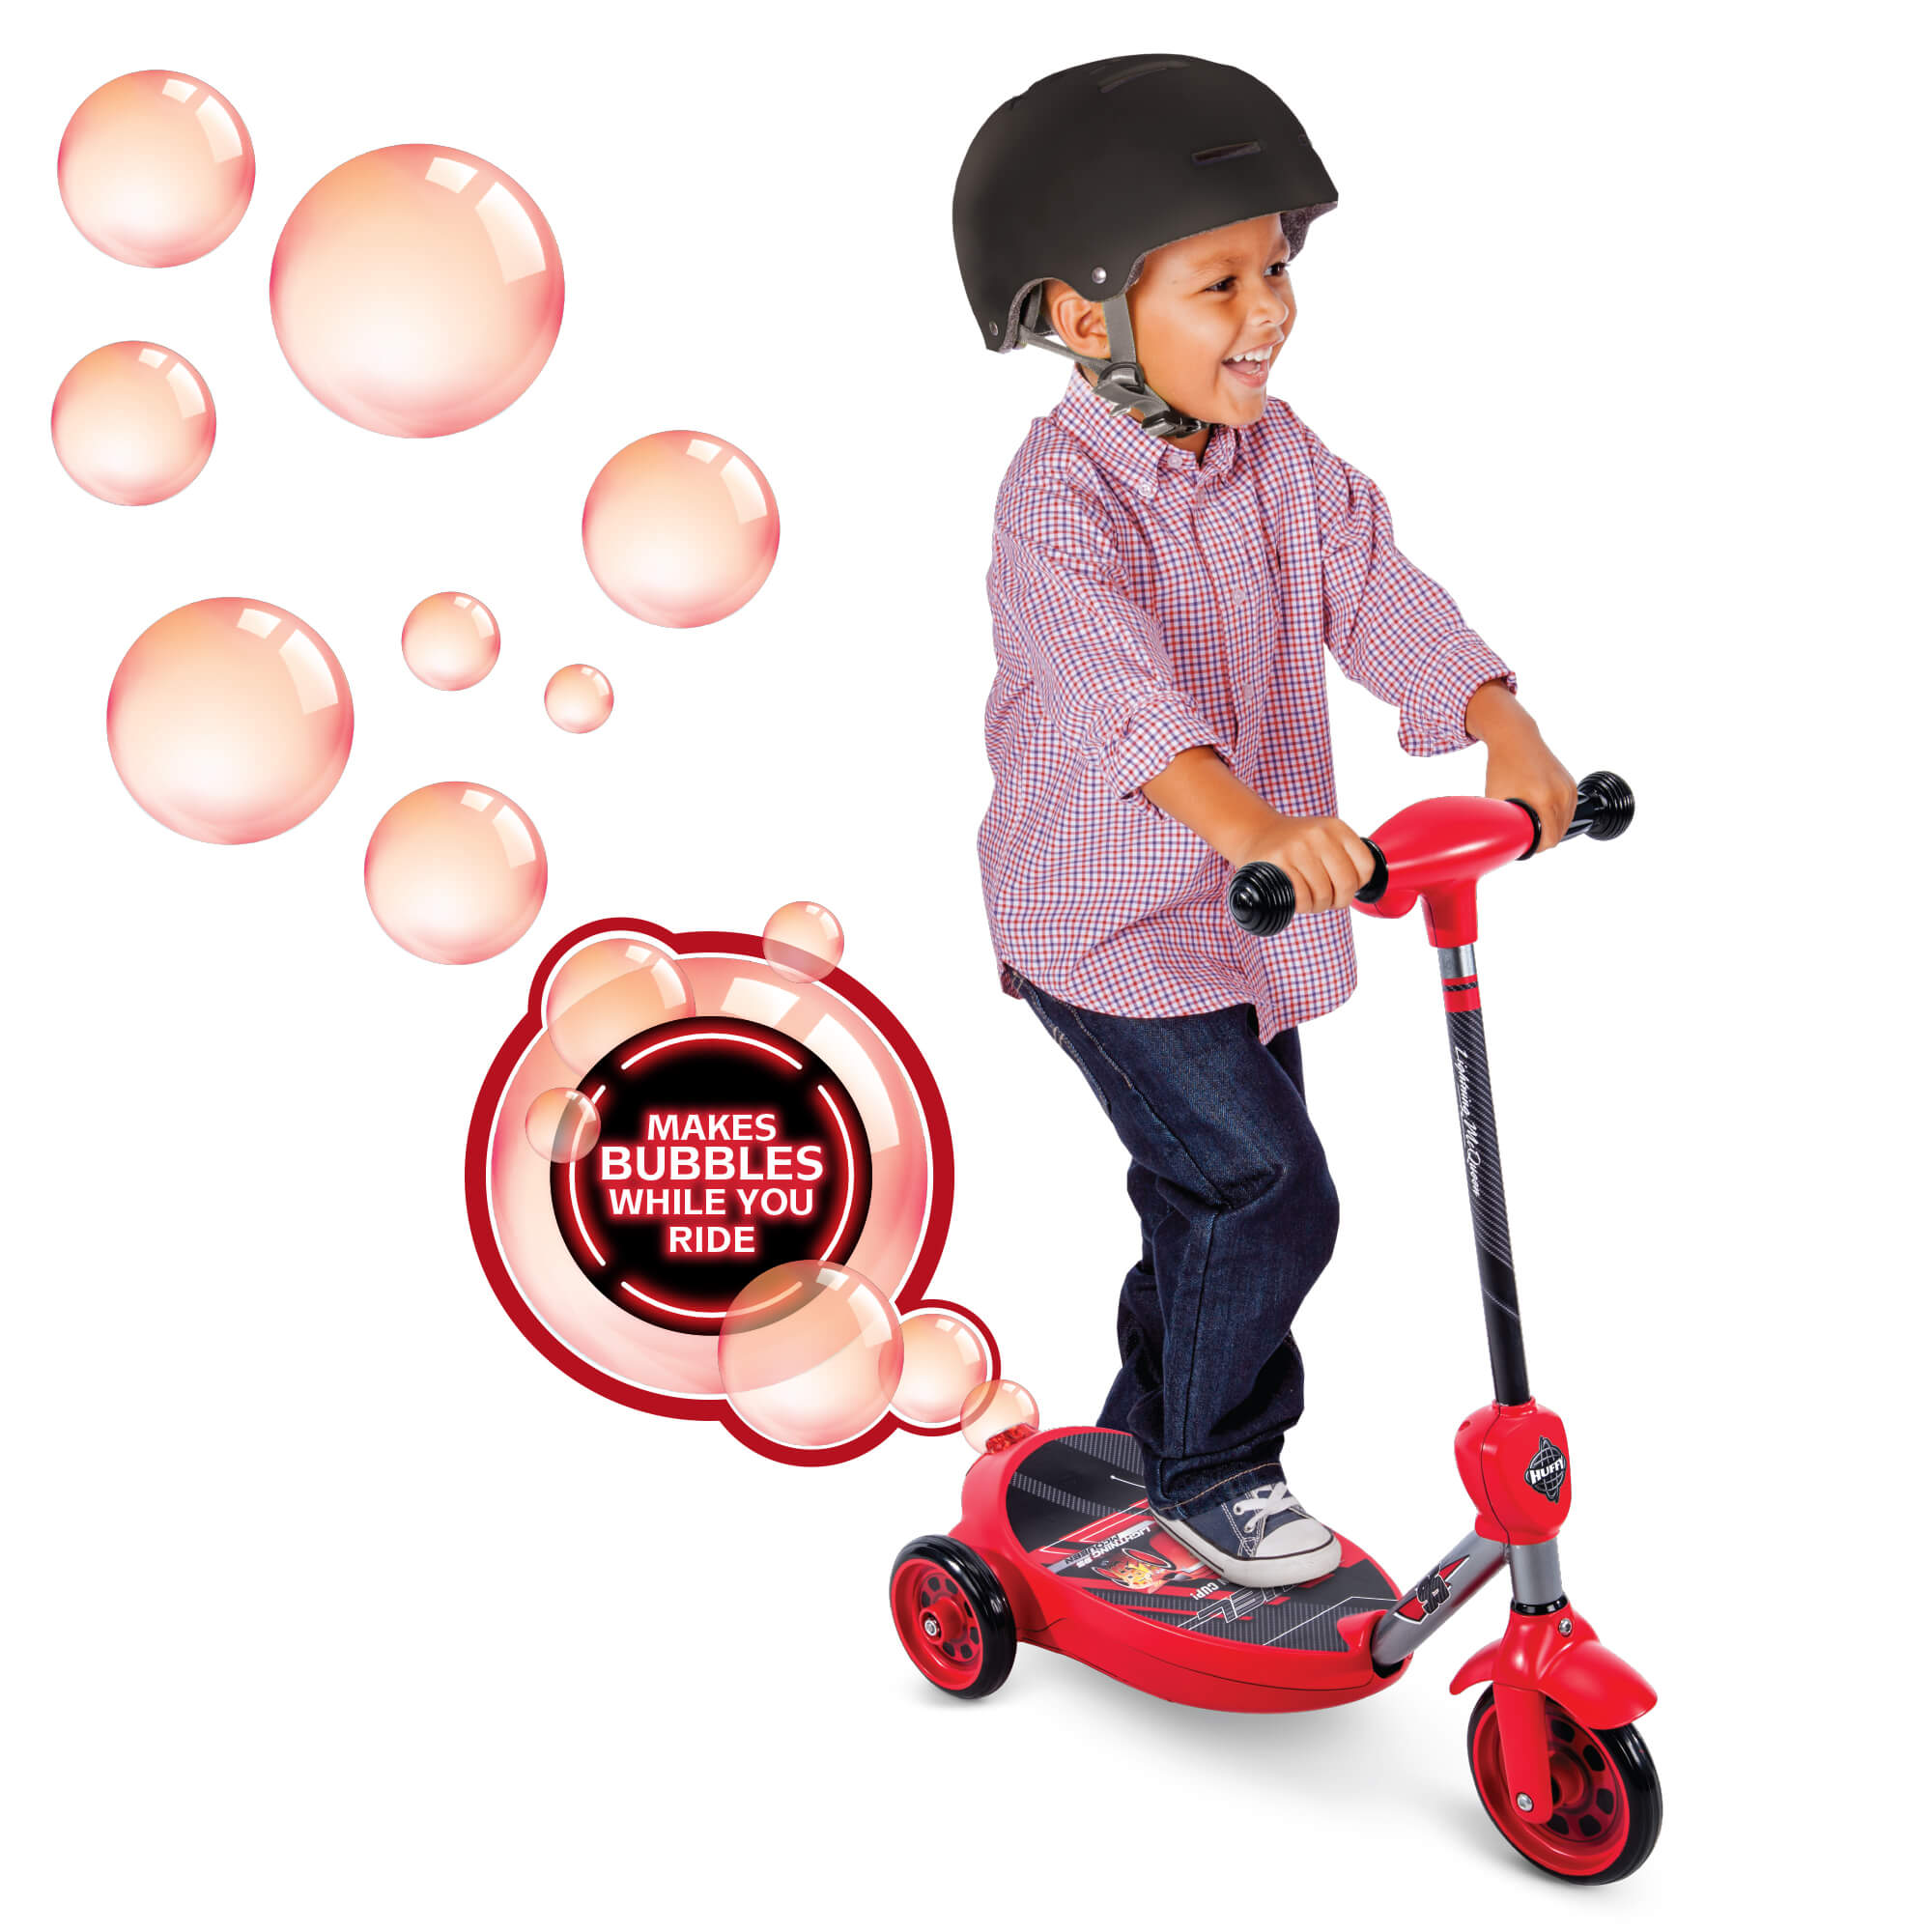 Disney Pixar Cars 3 Boys' 6 Volt Battery-Powered Electric Bubble Scooter by Huffy